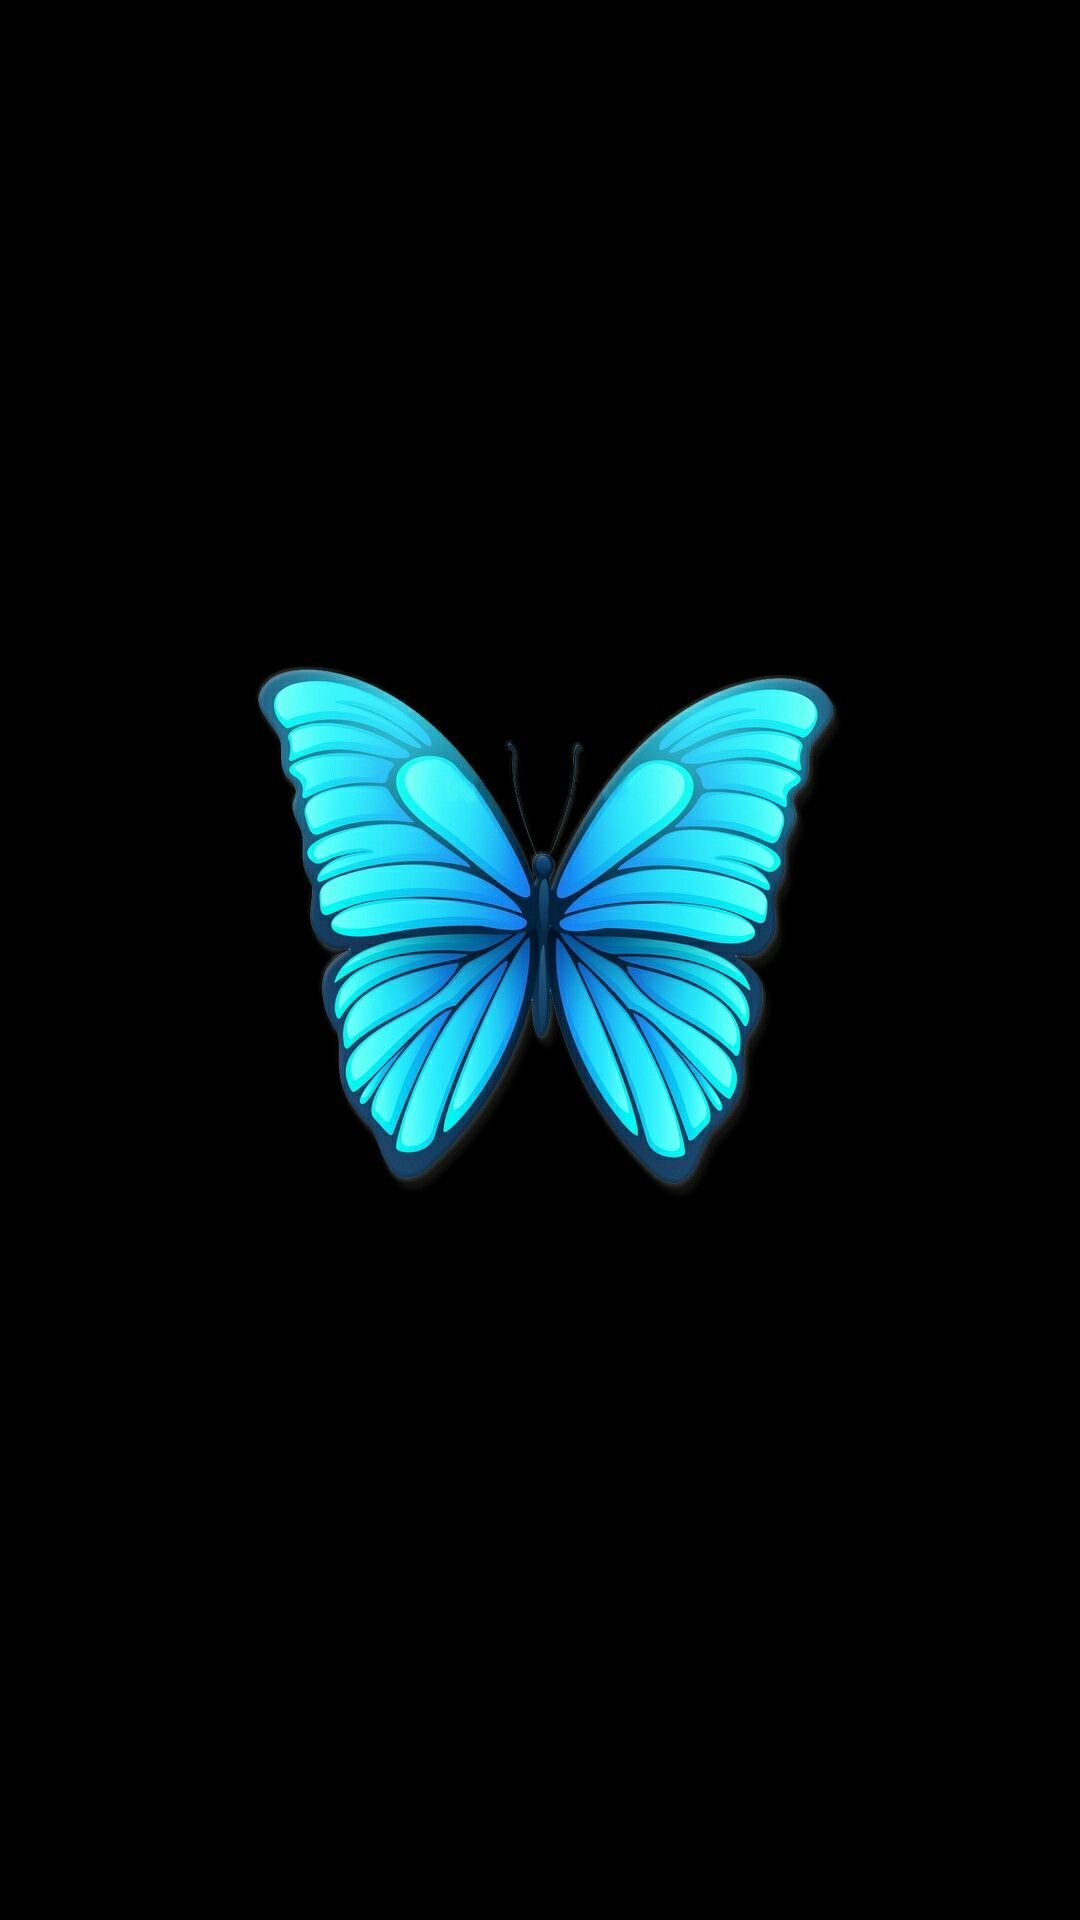 Pin By Debbie Gems On Wallpapers Butterfly Wallpaper Iphone Butterfly Wallpaper Black Wallpaper